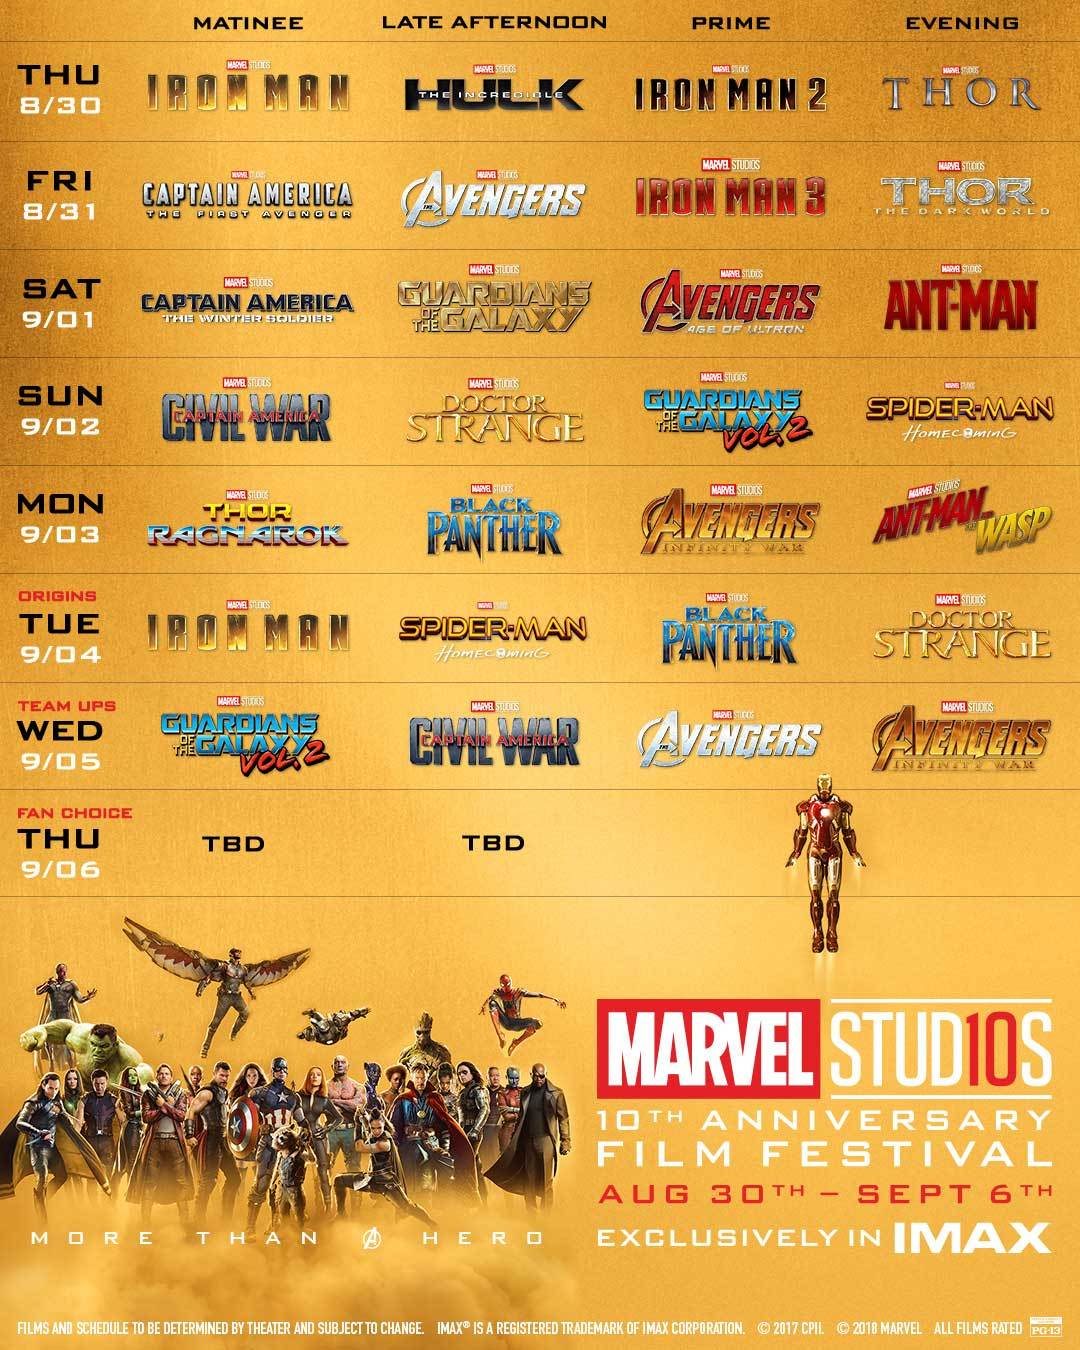 Schedule of  movie showings for Marvel Studios 10th anniversary film festival aug 20th - Sept 6th exclusively in IMAX  with various Marvel Cinematic Universe Heroes